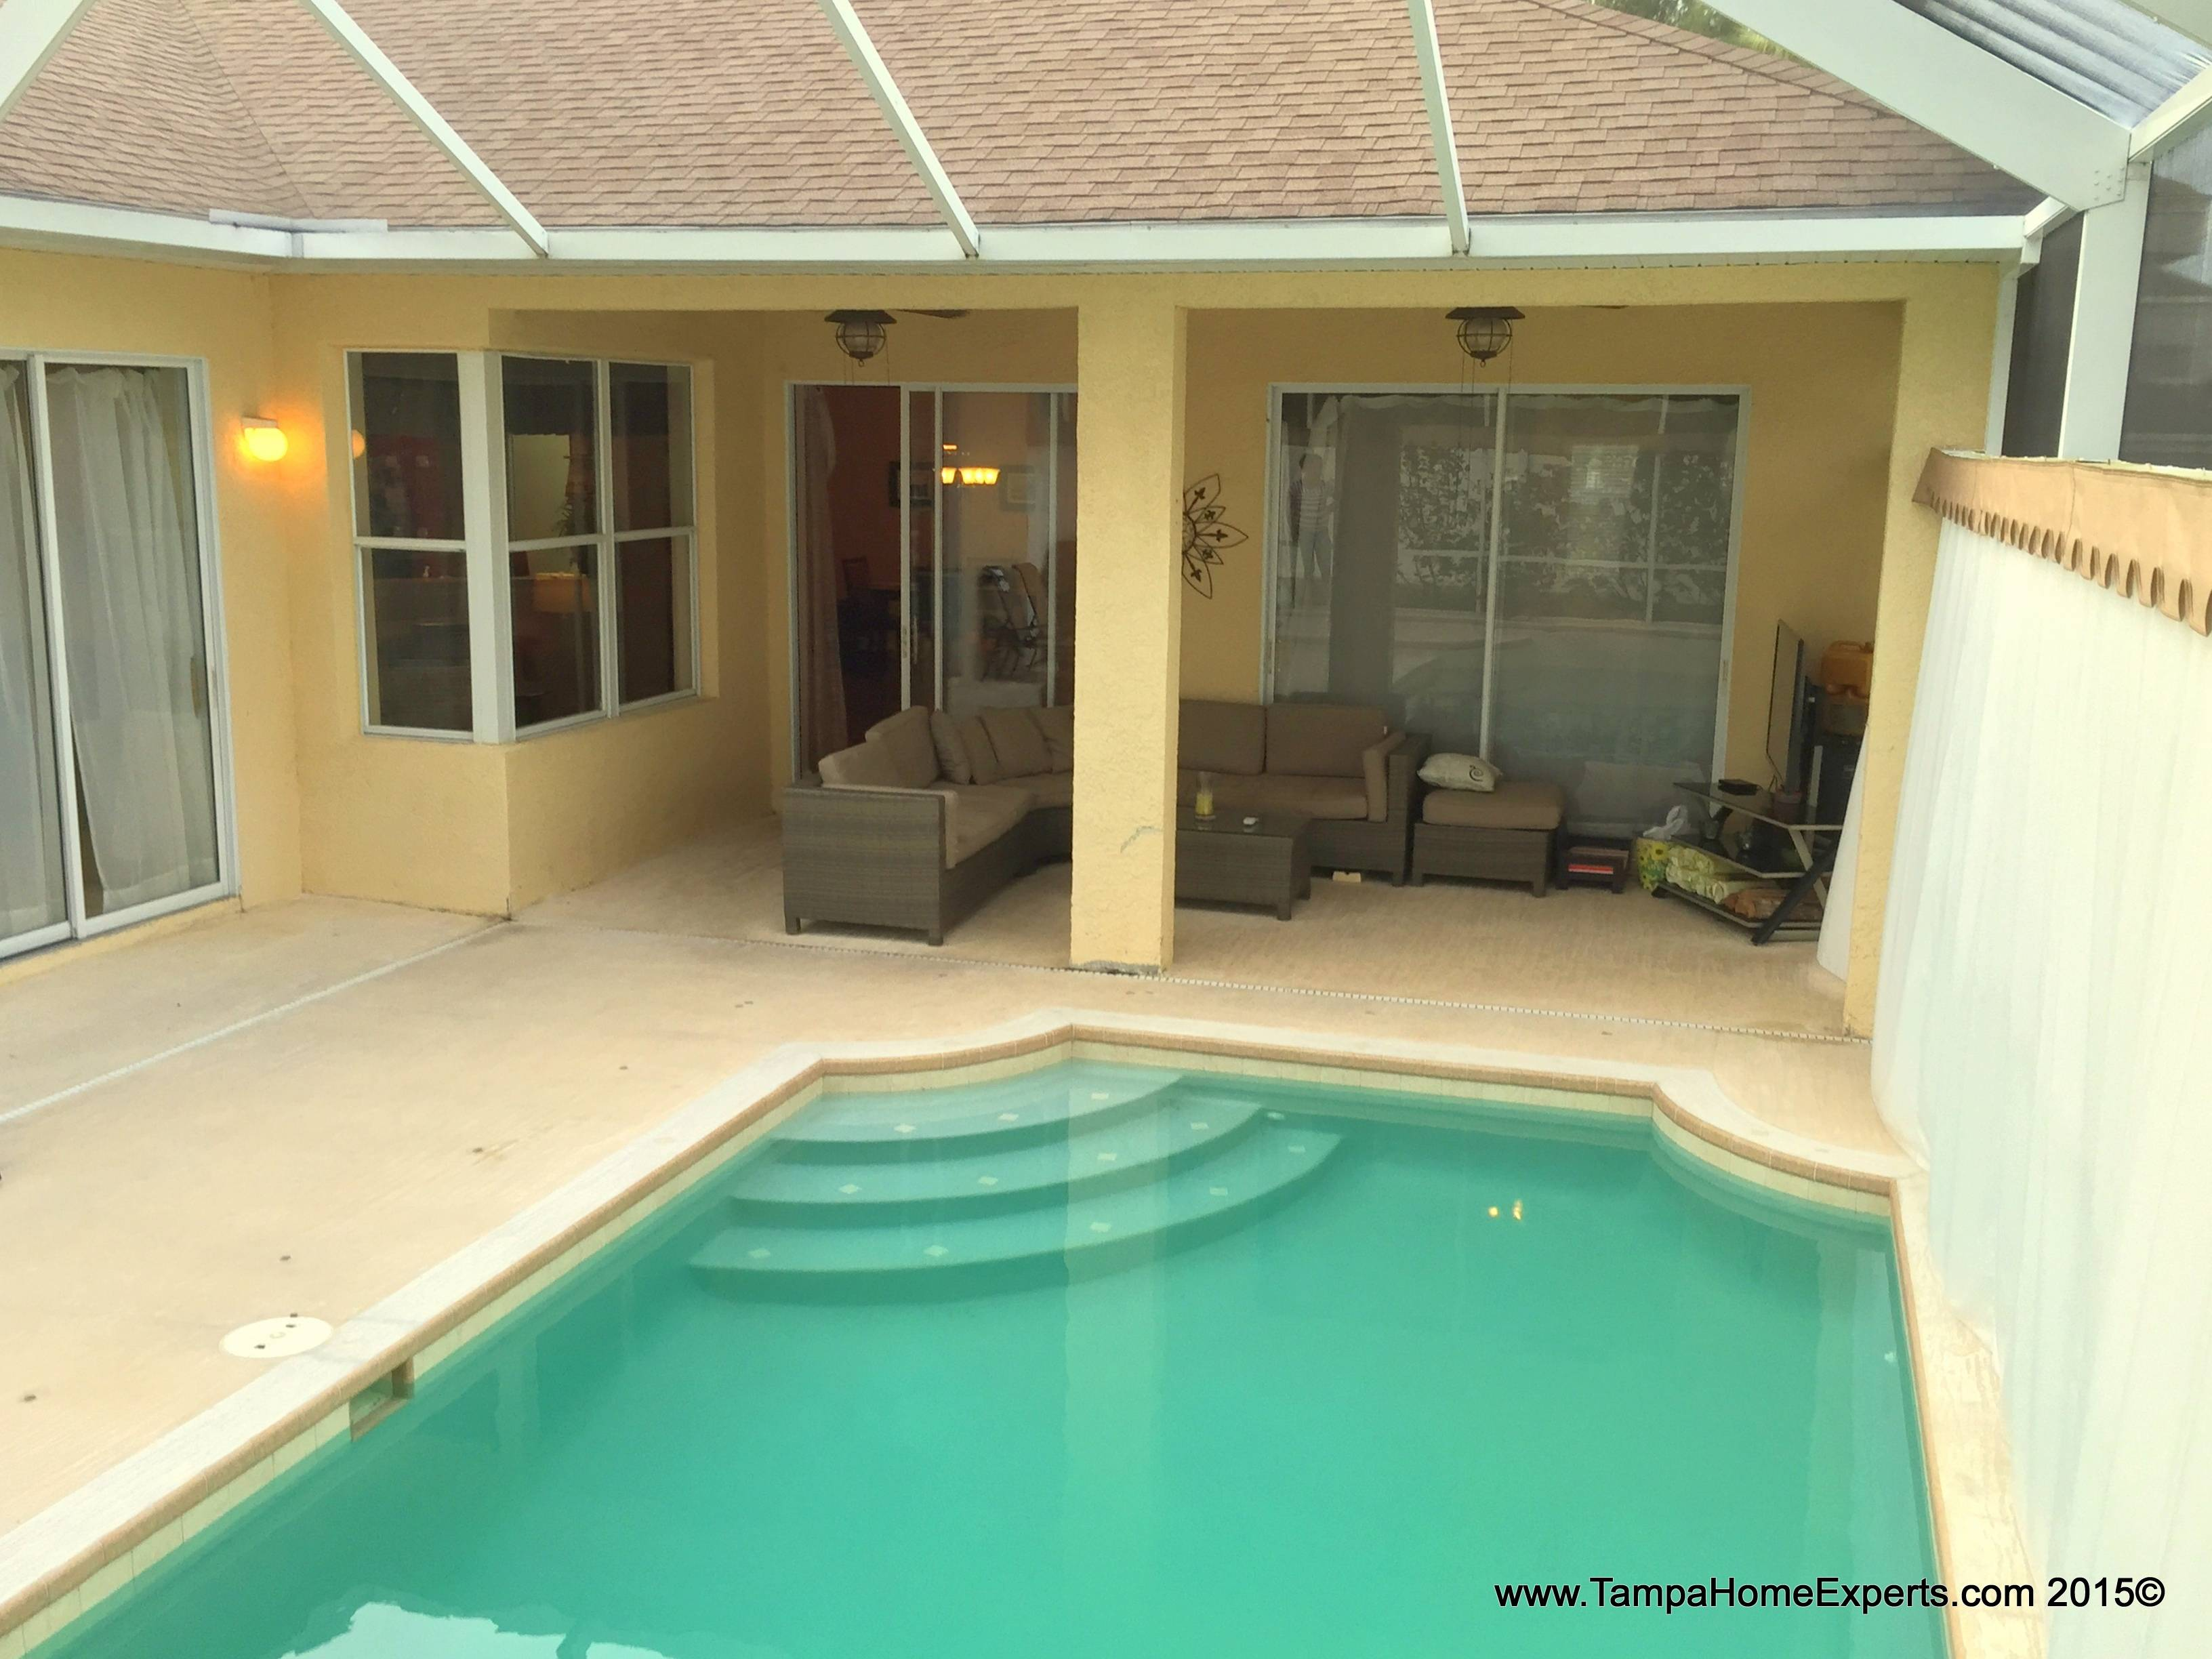 wesley chapel pool homes